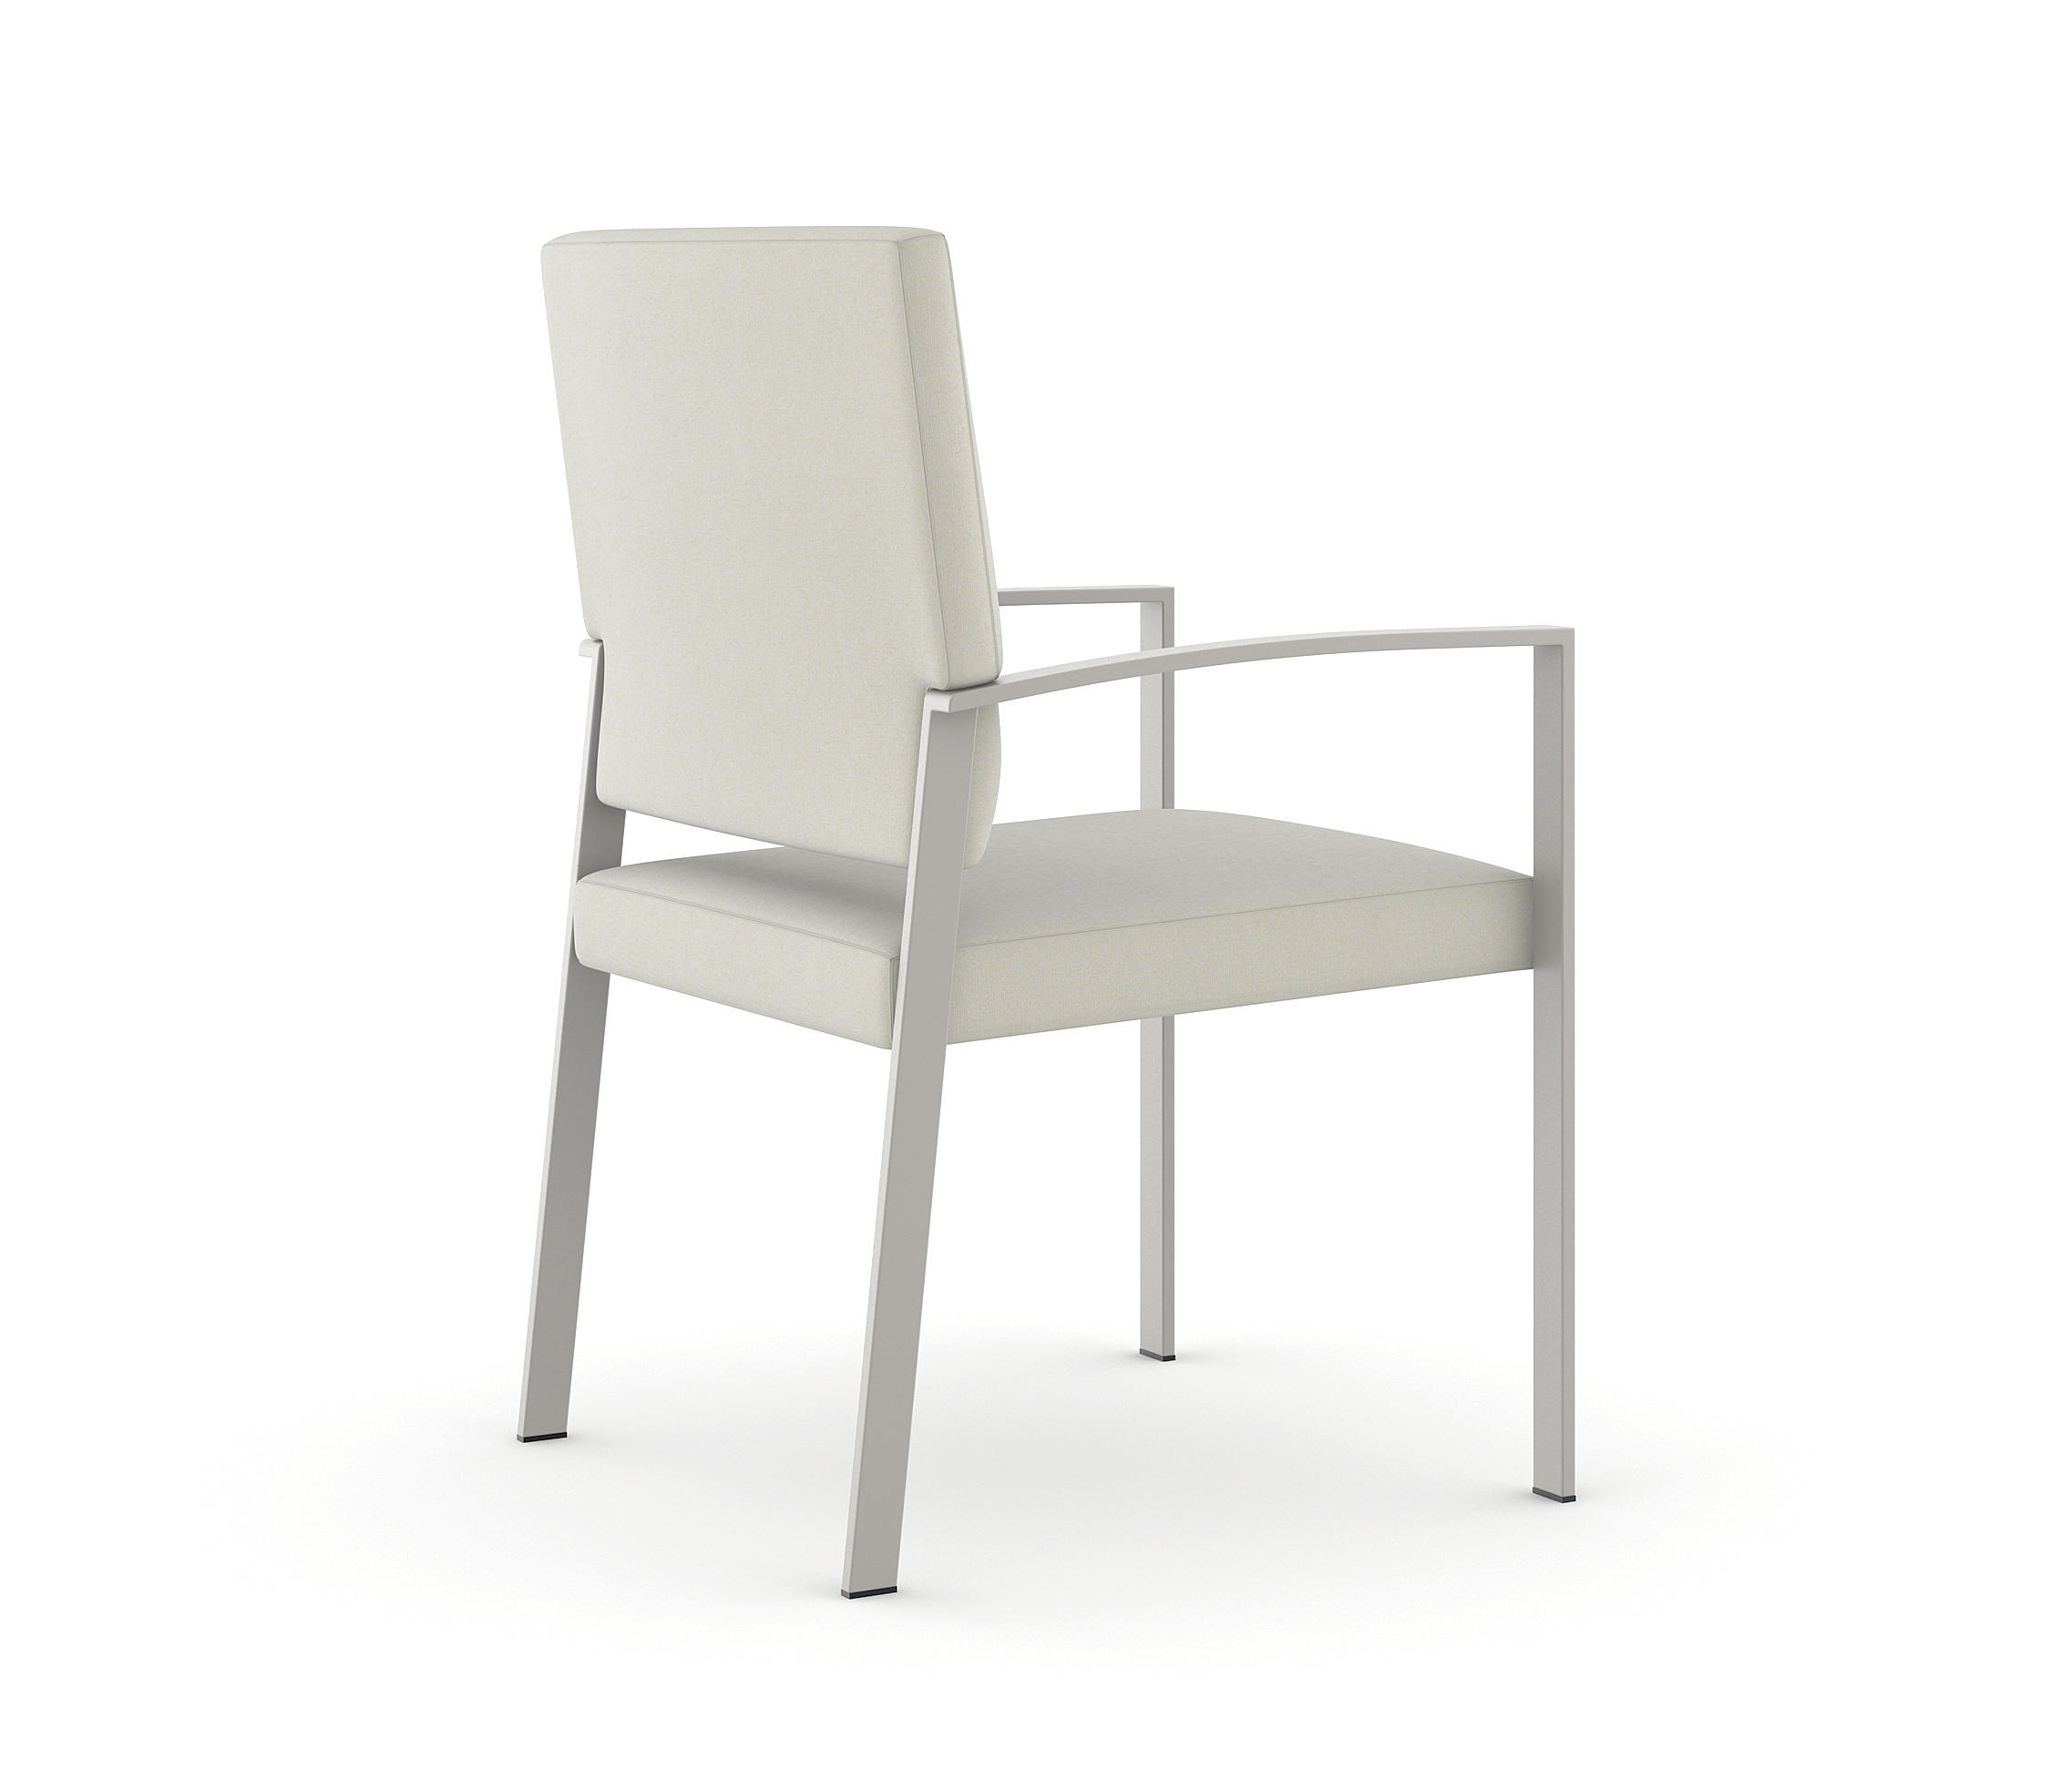 high seat chairs elderly leeds lightweight camp steel back side chair powder coated frame